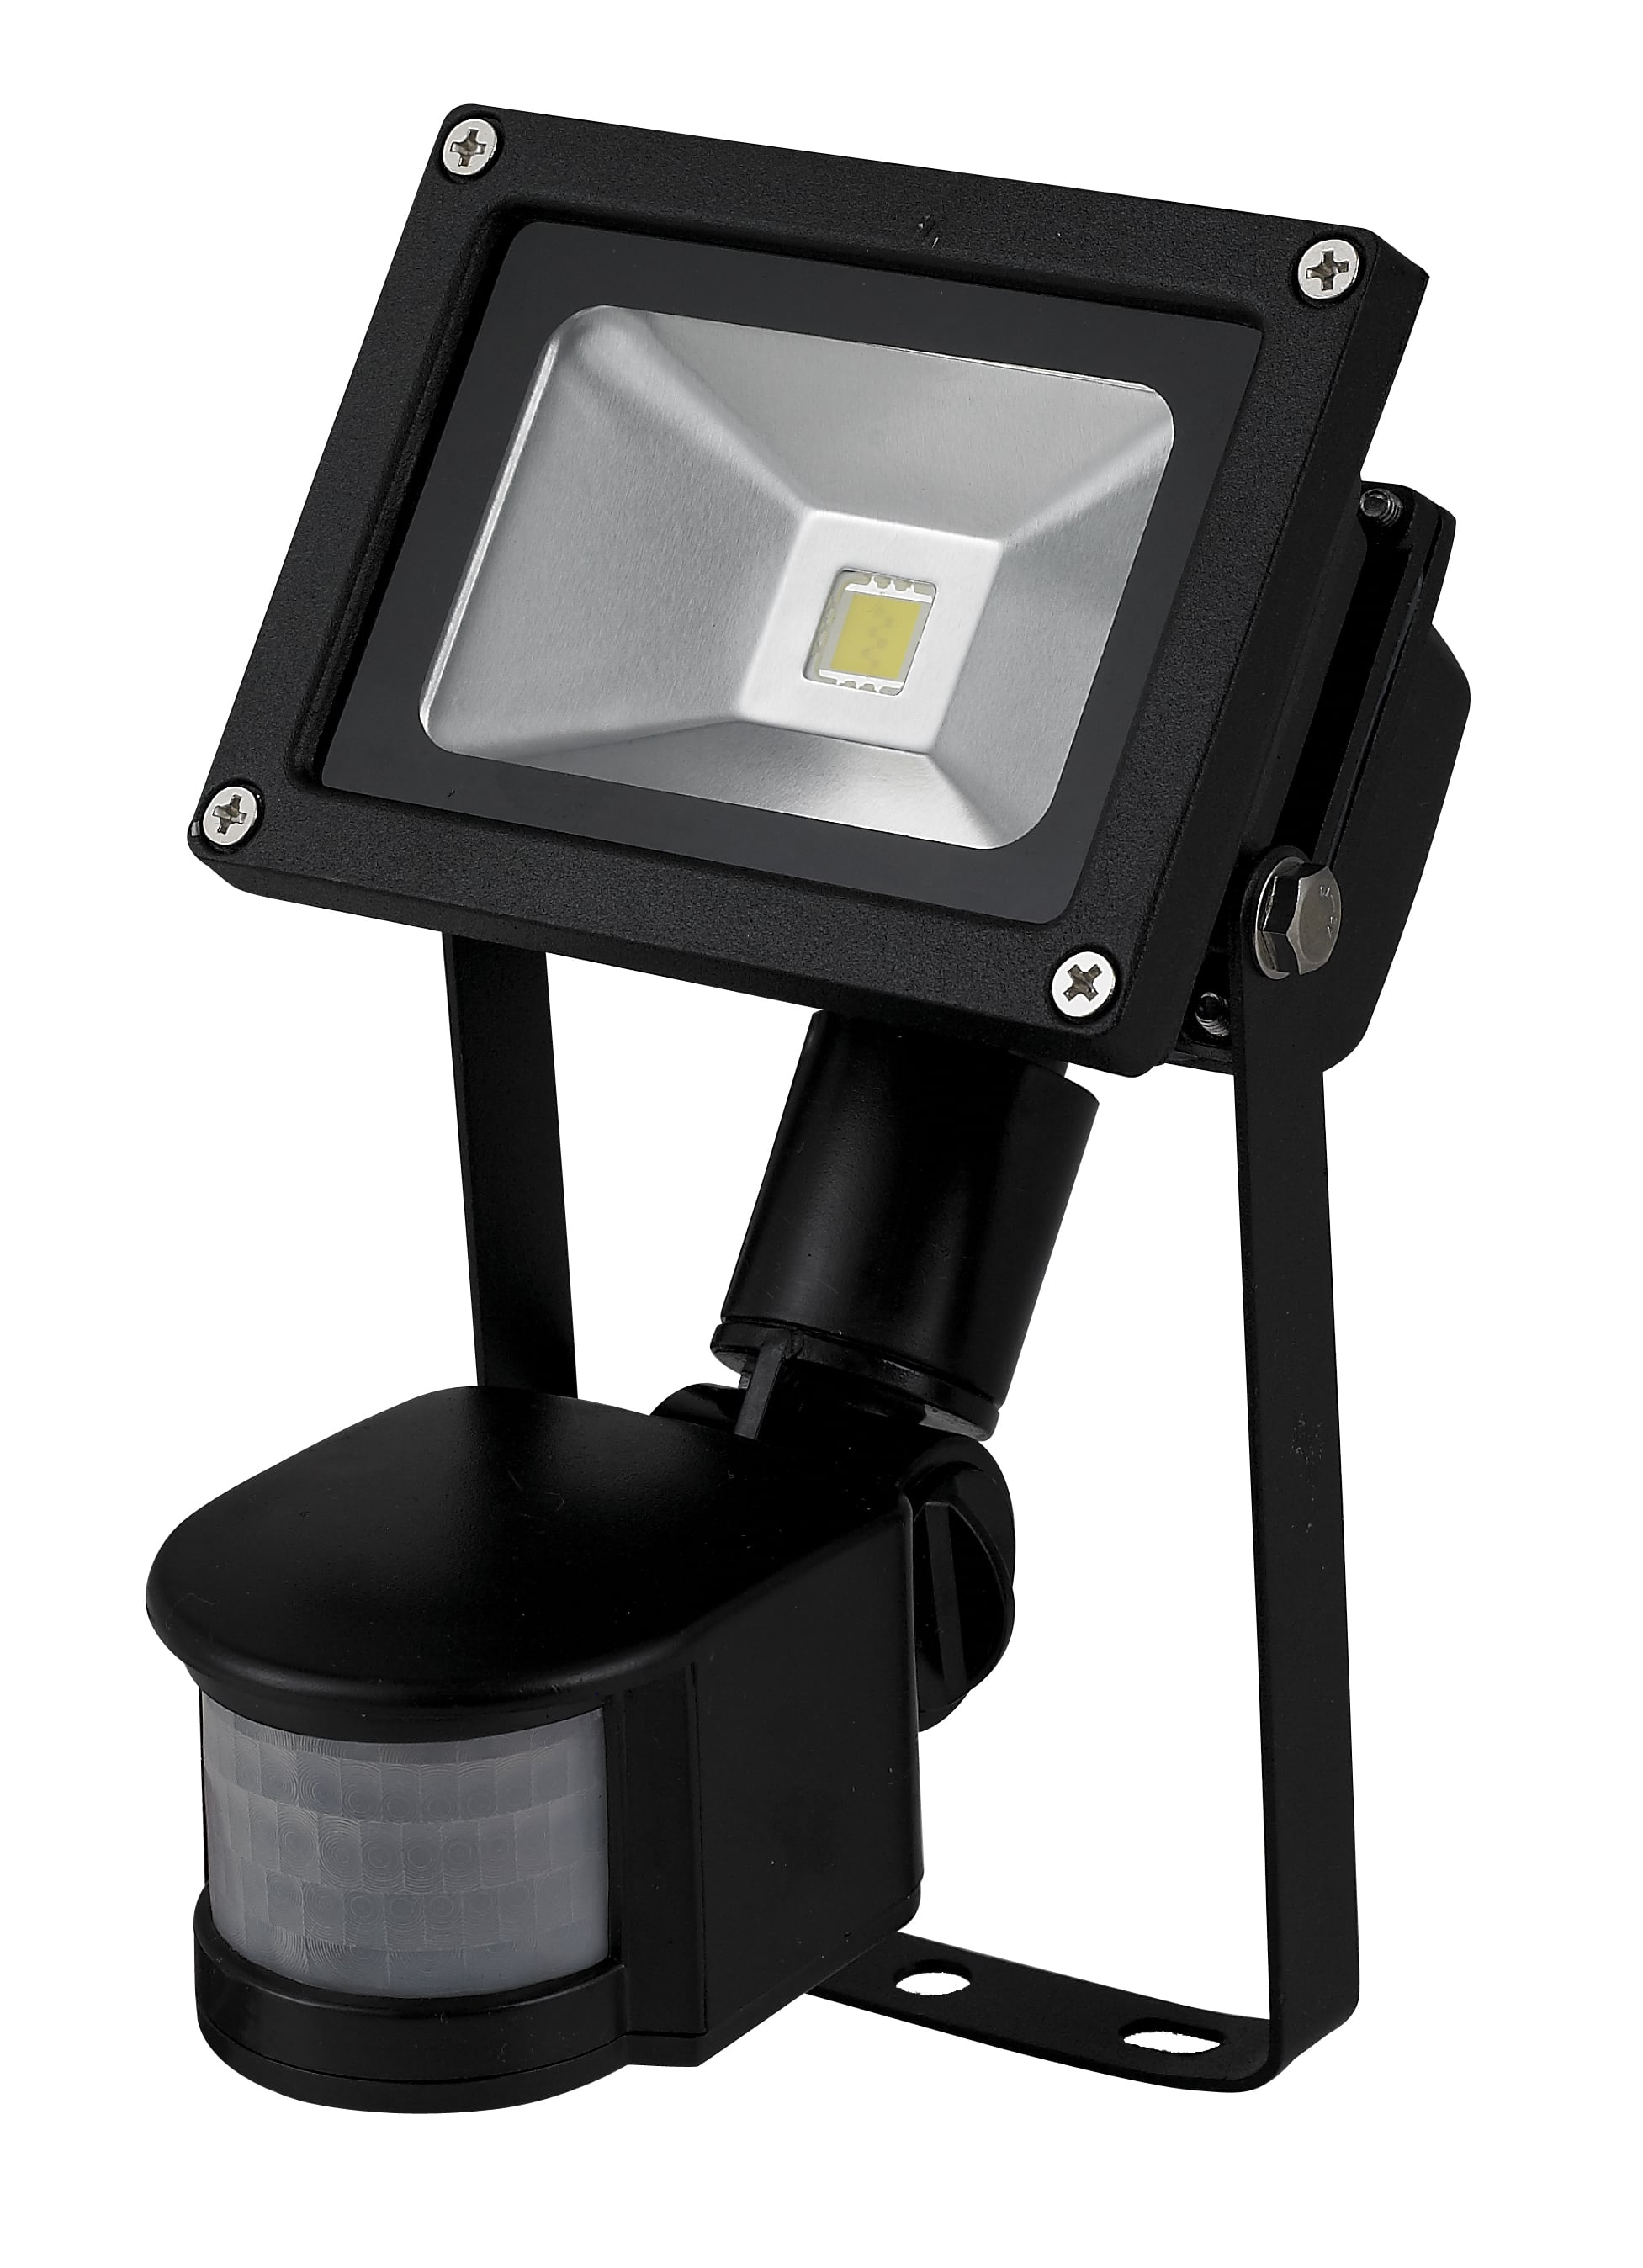 LED floodlight with motion sensor 20W / 230V 6400K